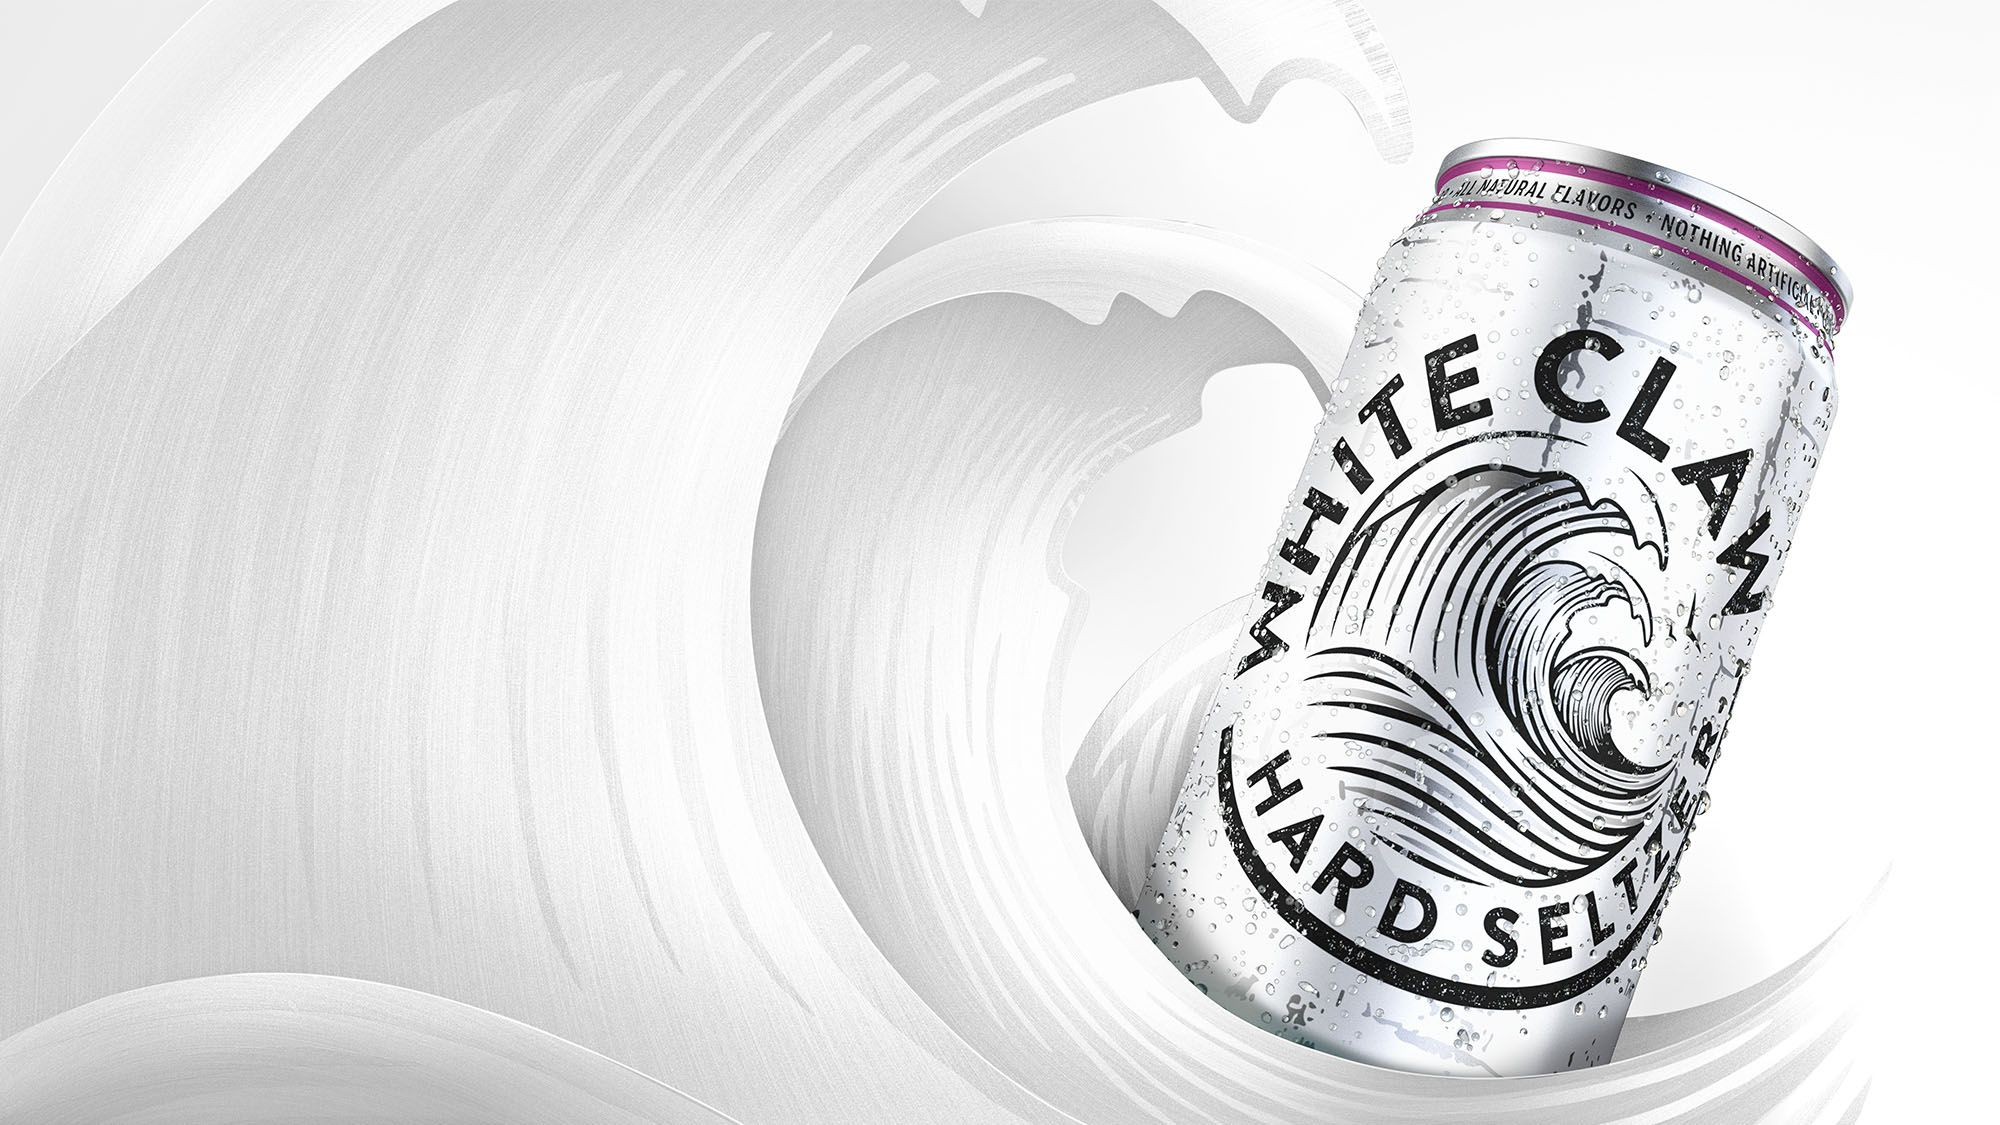 It's just a picture of Universal White Claw Hard Seltzer Label